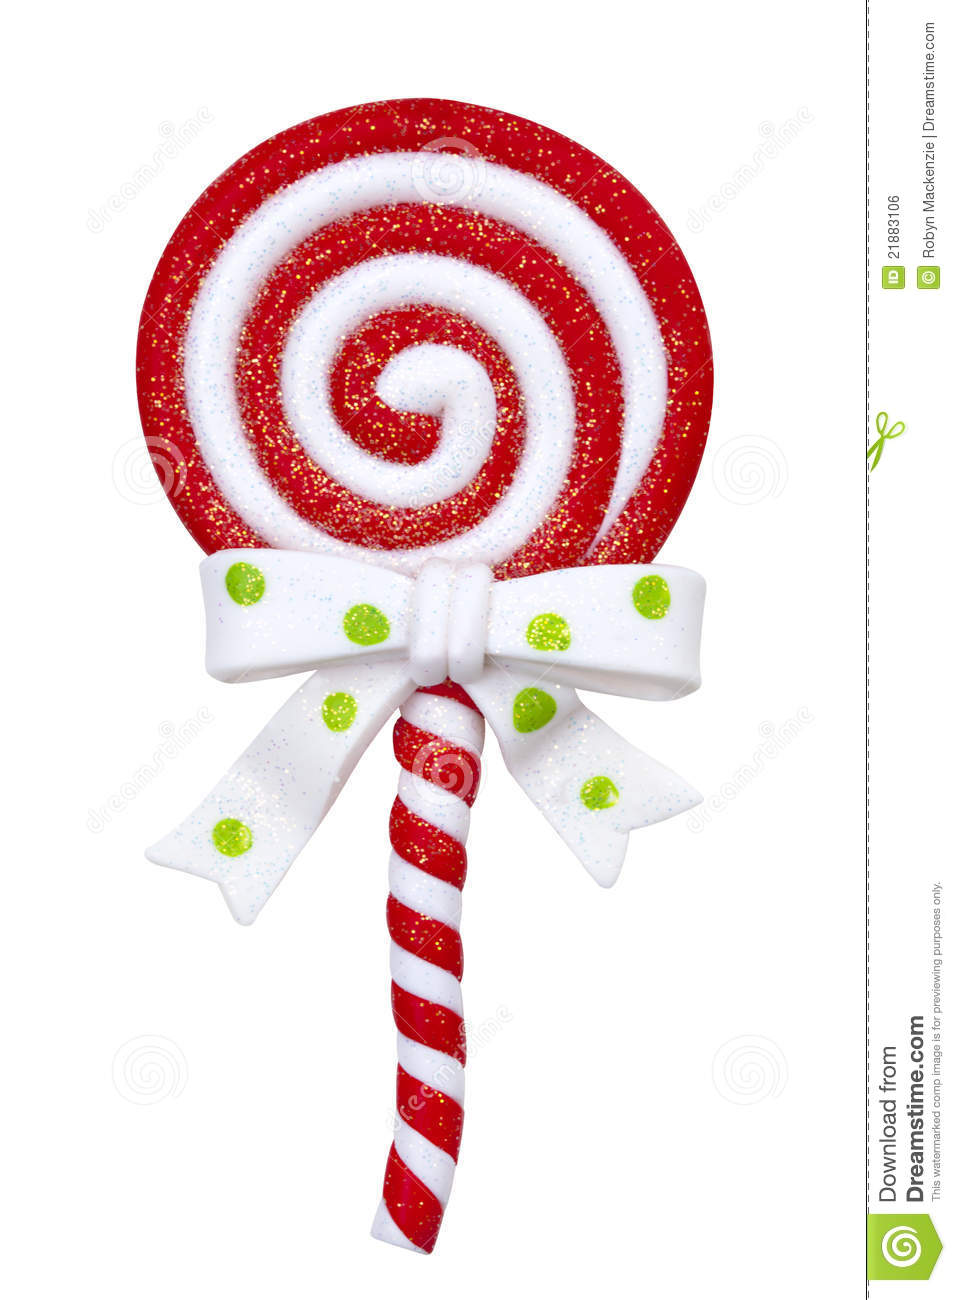 Christmas Lollipop Royalty Free Stock Image - Image: 21883106